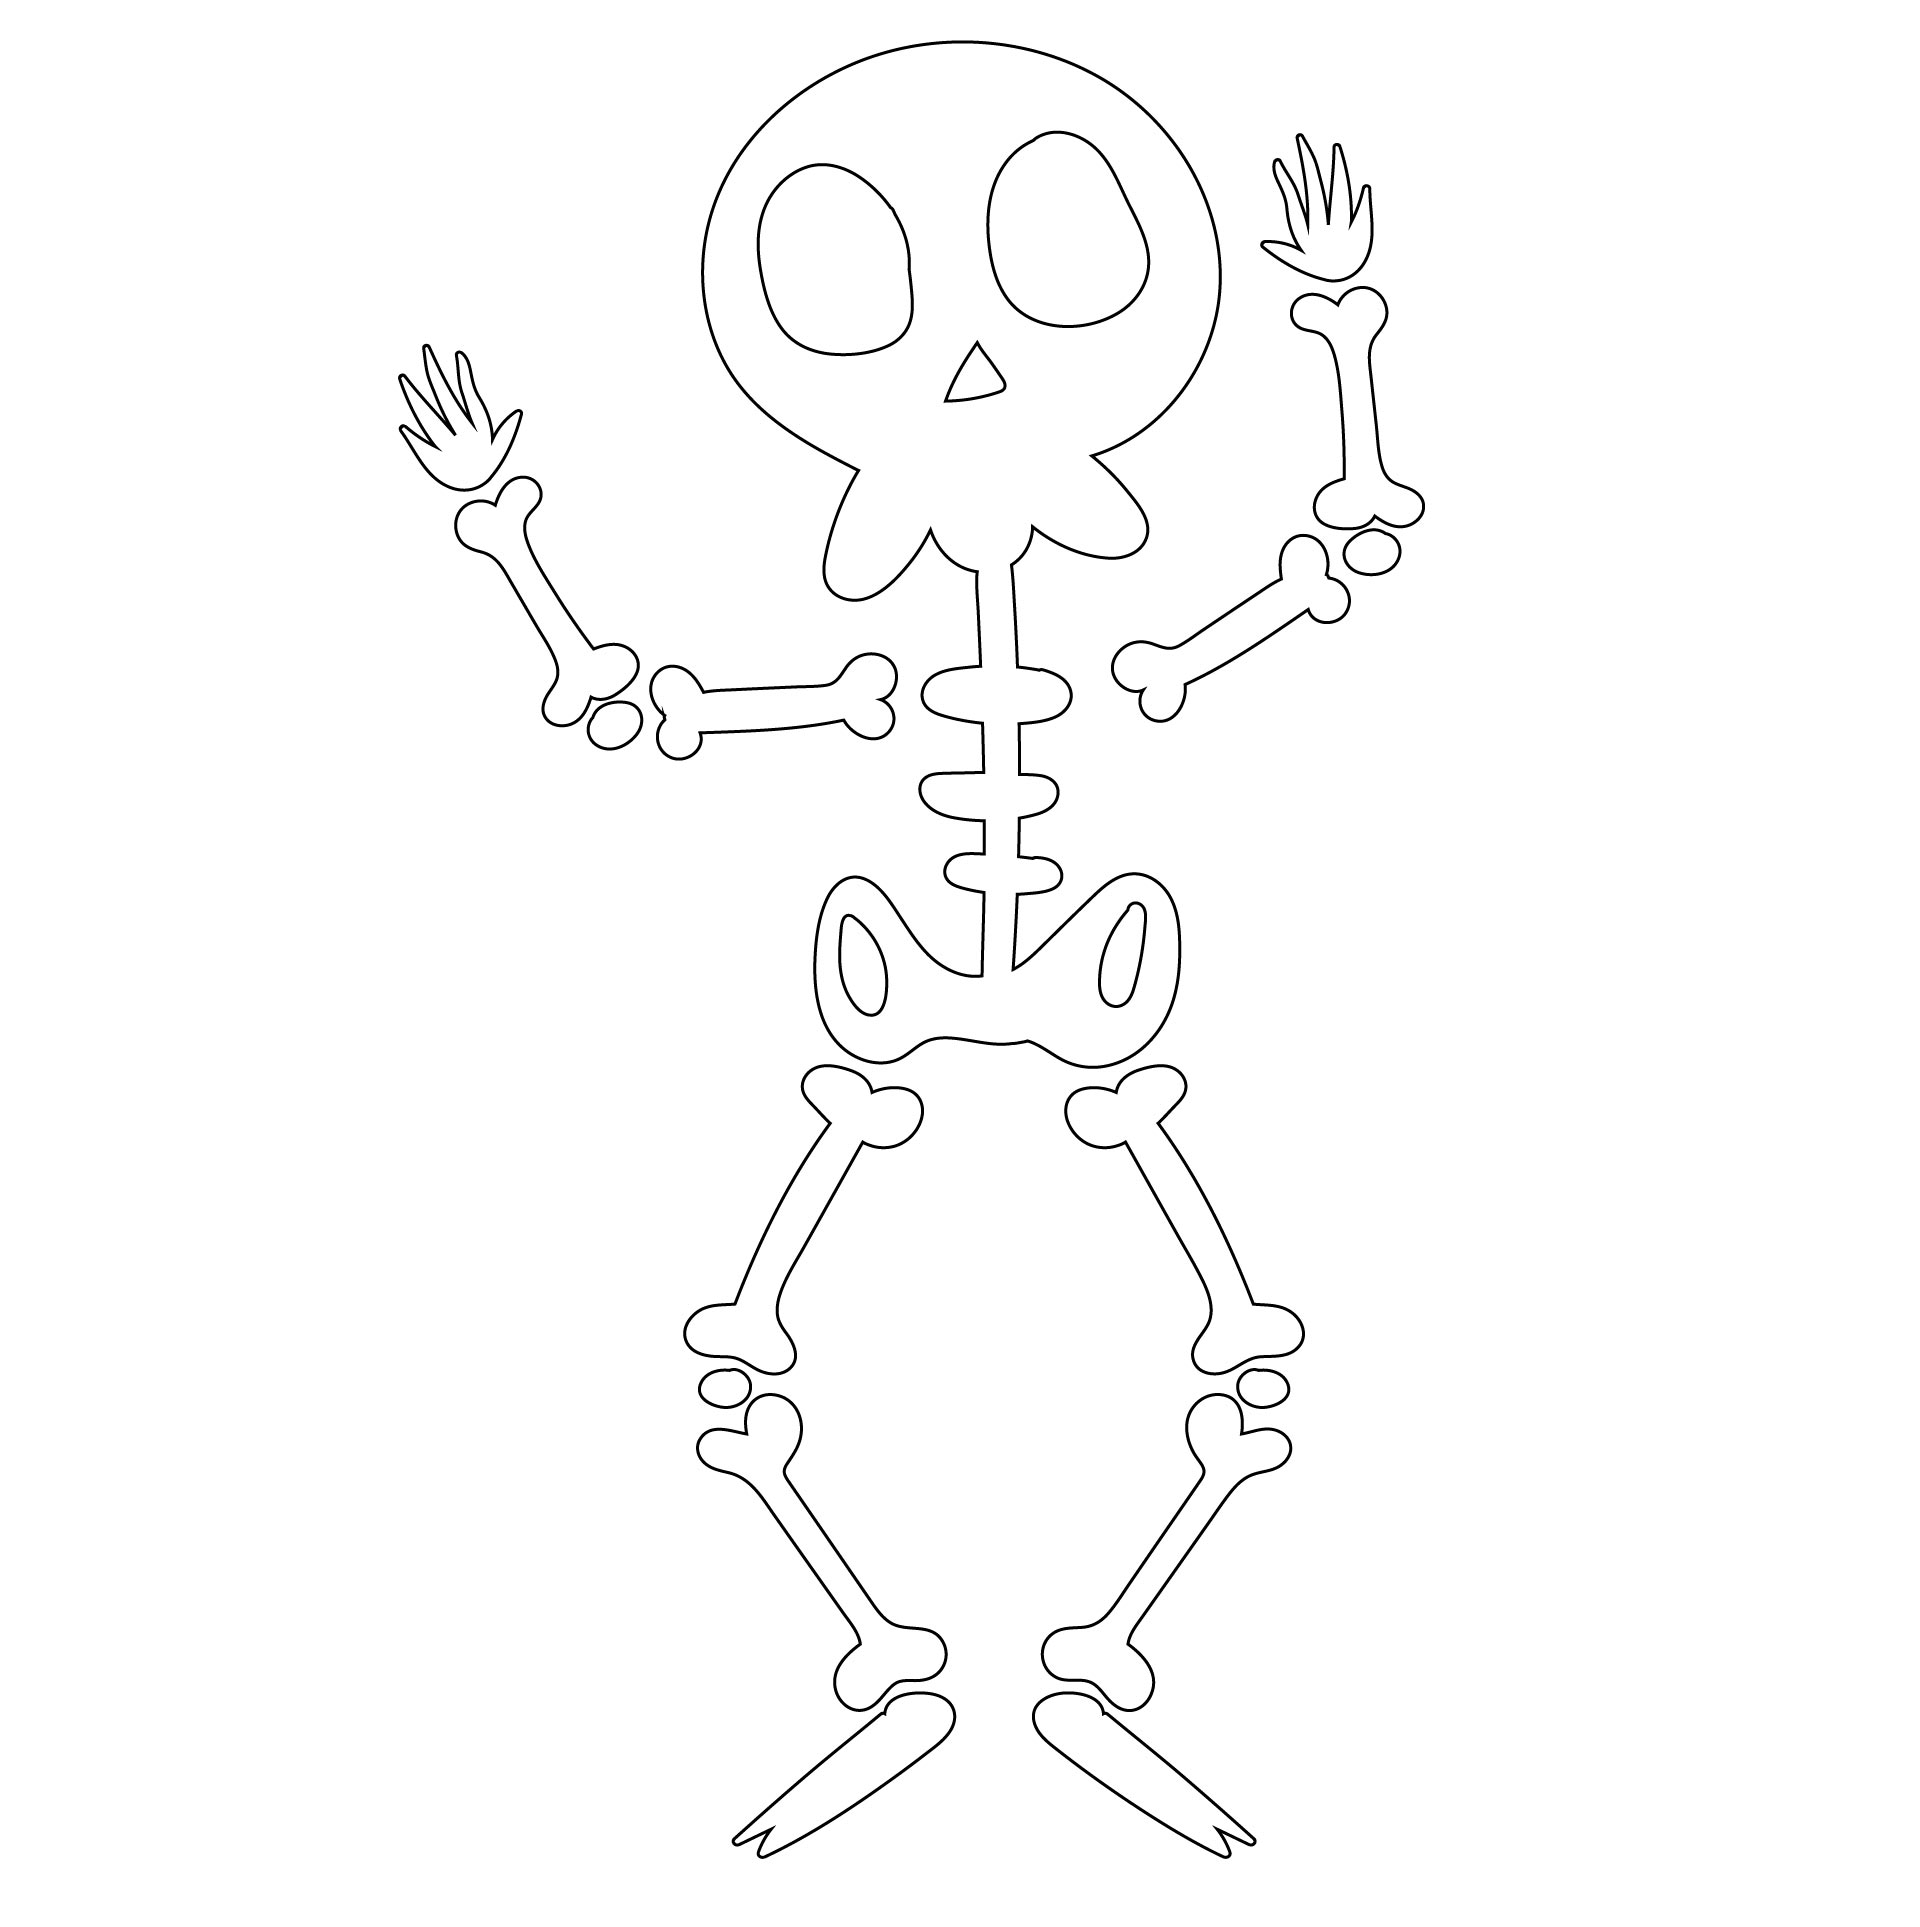 5 Images of Printable Halloween Skeleton Game